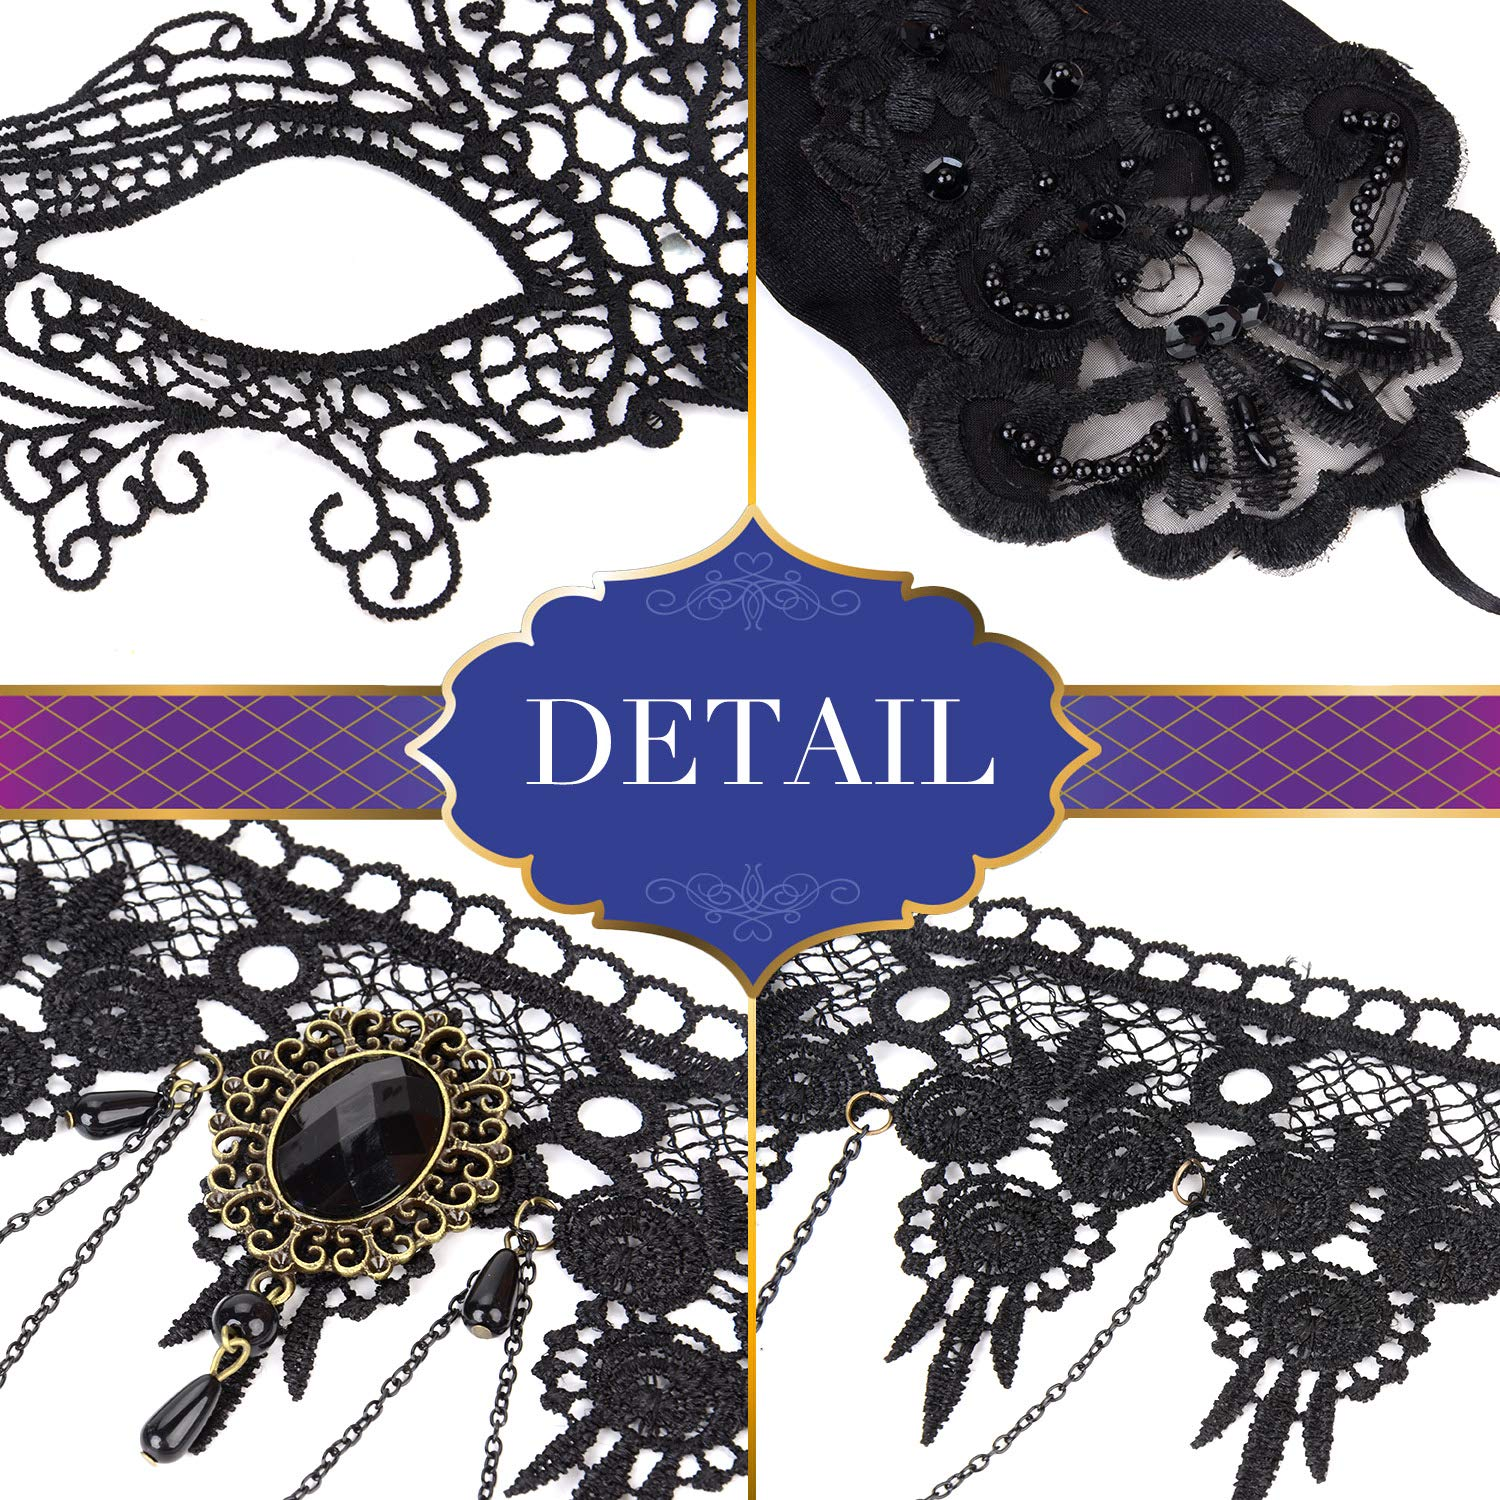 Aniwon Punk Style Halloween Party Black Lace Choker Necklace Fingerless Satin Embroidered Gloves Lace Masquerade Mask Set for Women for Wedding Evening Vampire Costume steampunk Accessories